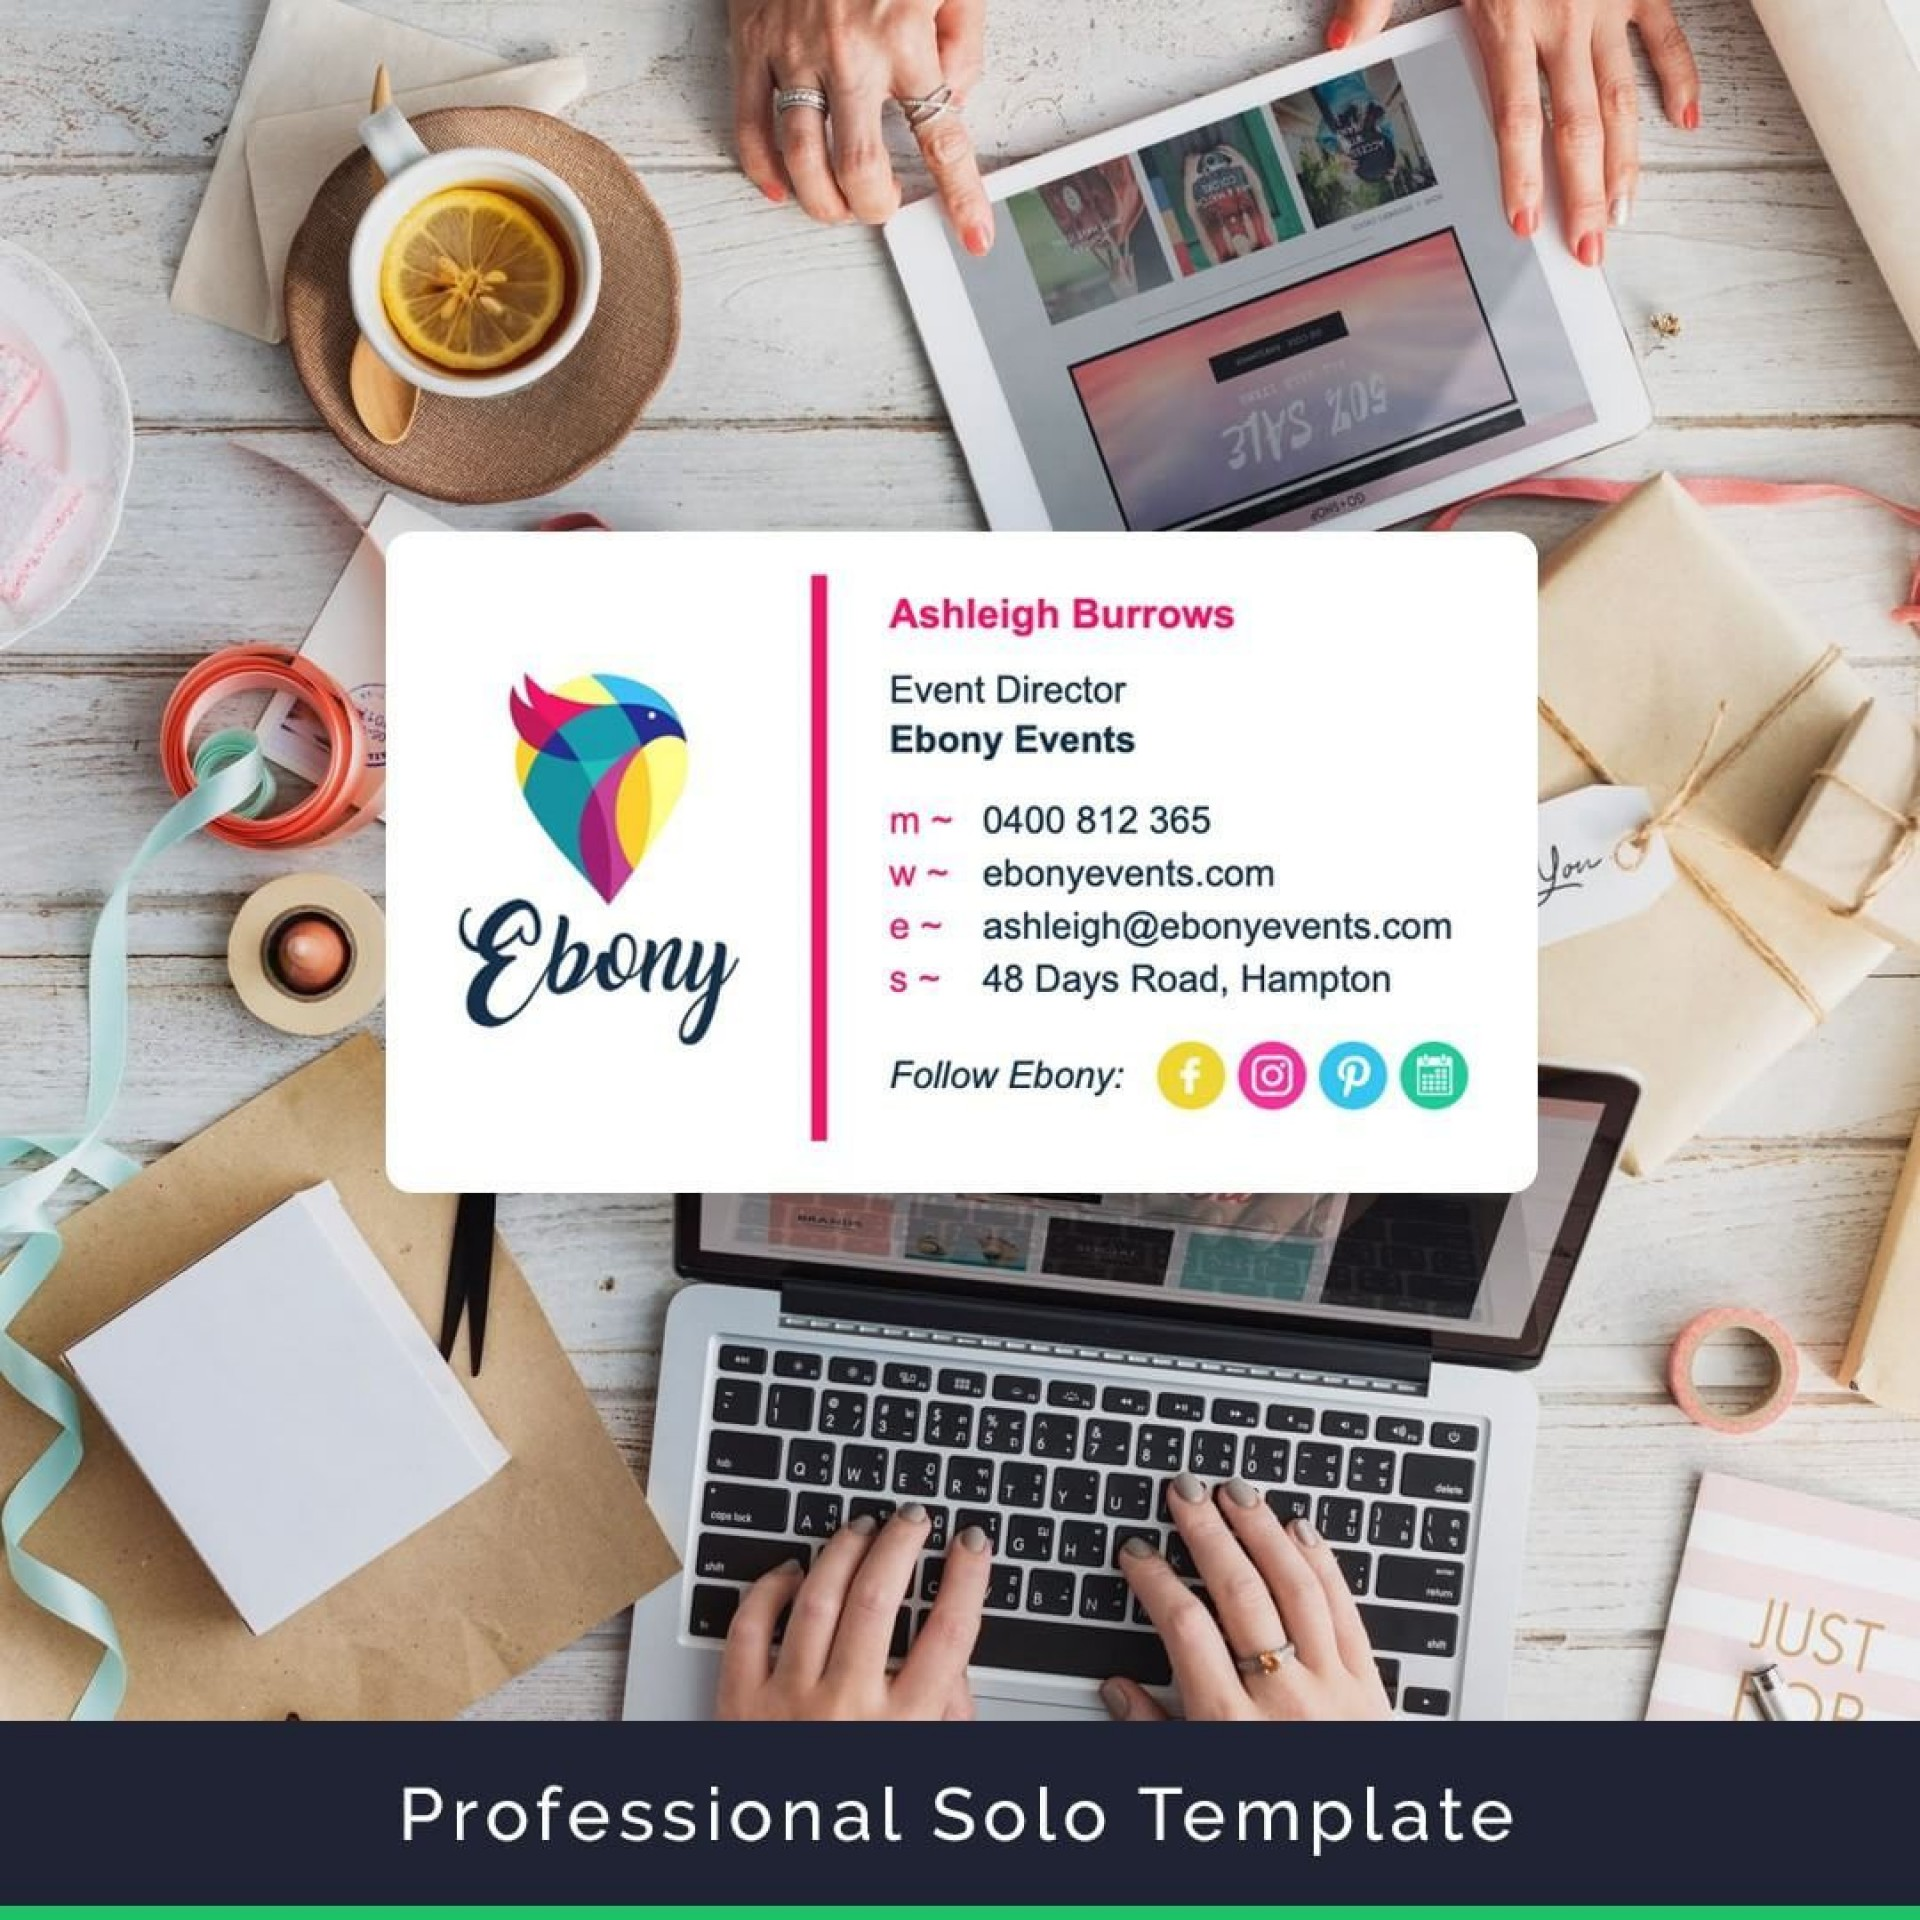 009 Fantastic Outlook Email Signature Template Example Sample  Examples1920